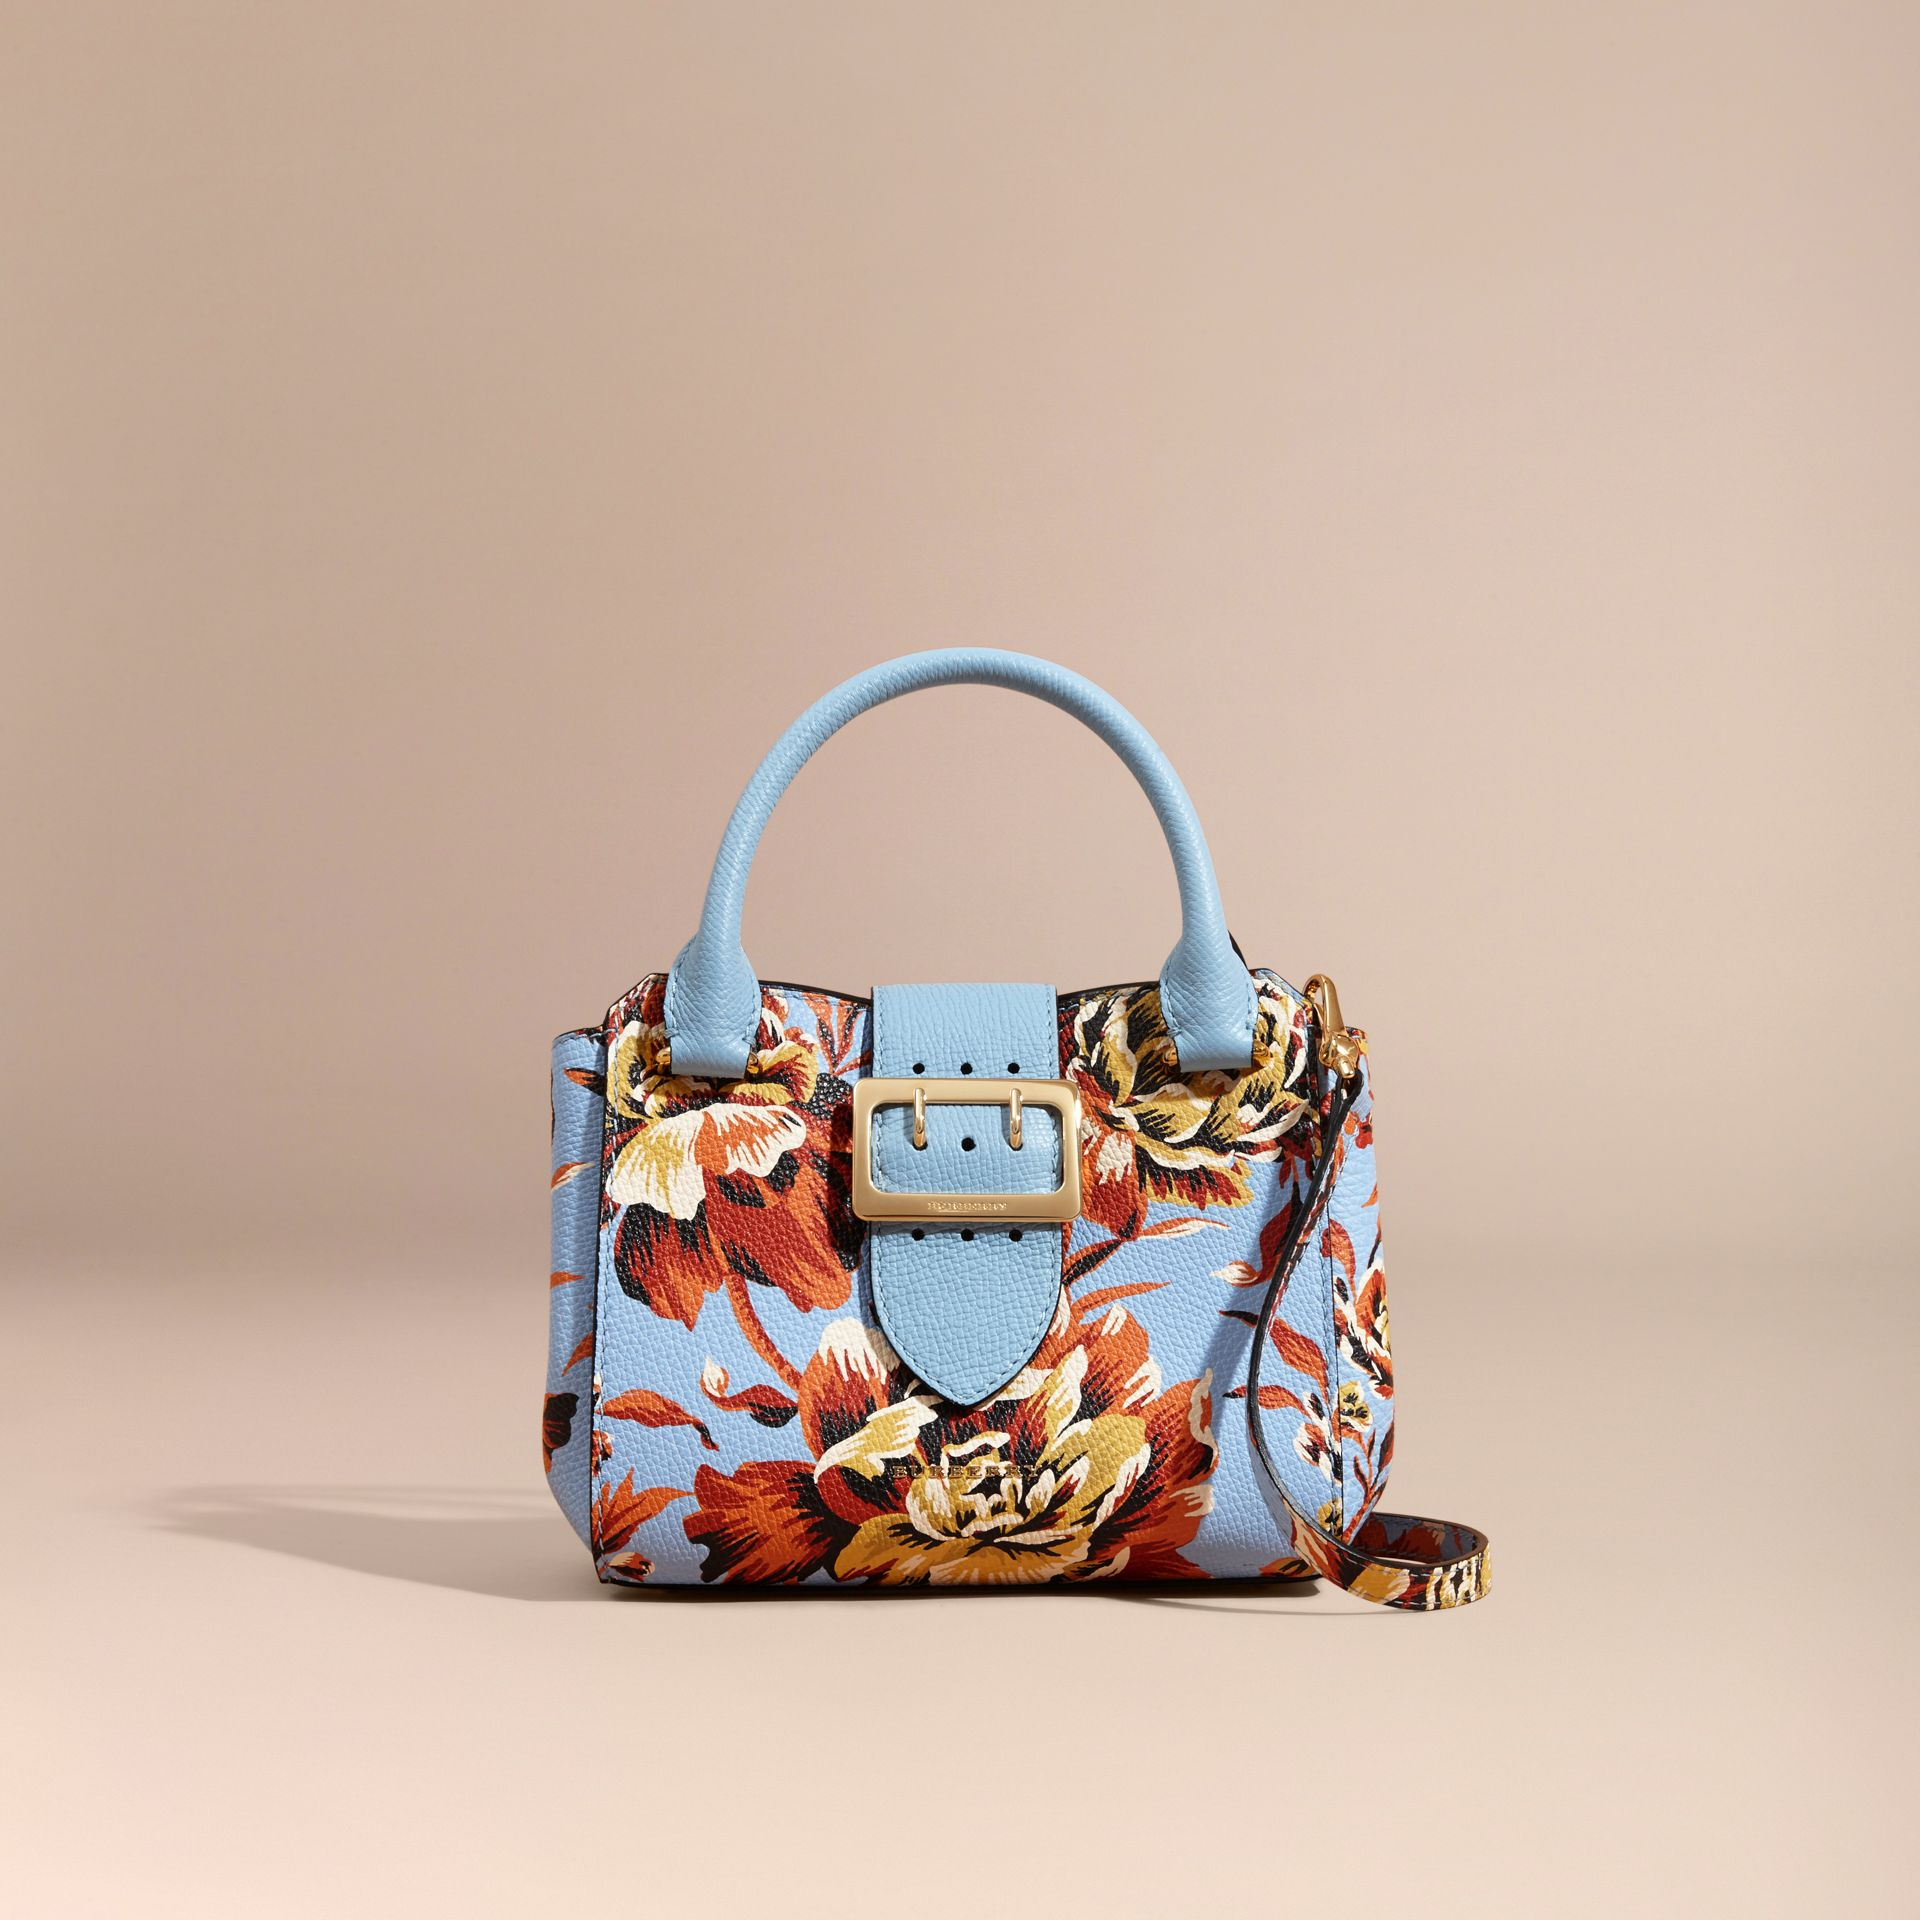 Bleu pâle/orange vif Petit sac tote The Buckle en cuir avec imprimé à pivoines roses Bleu Pâle/orange Vif - photo de la galerie 9